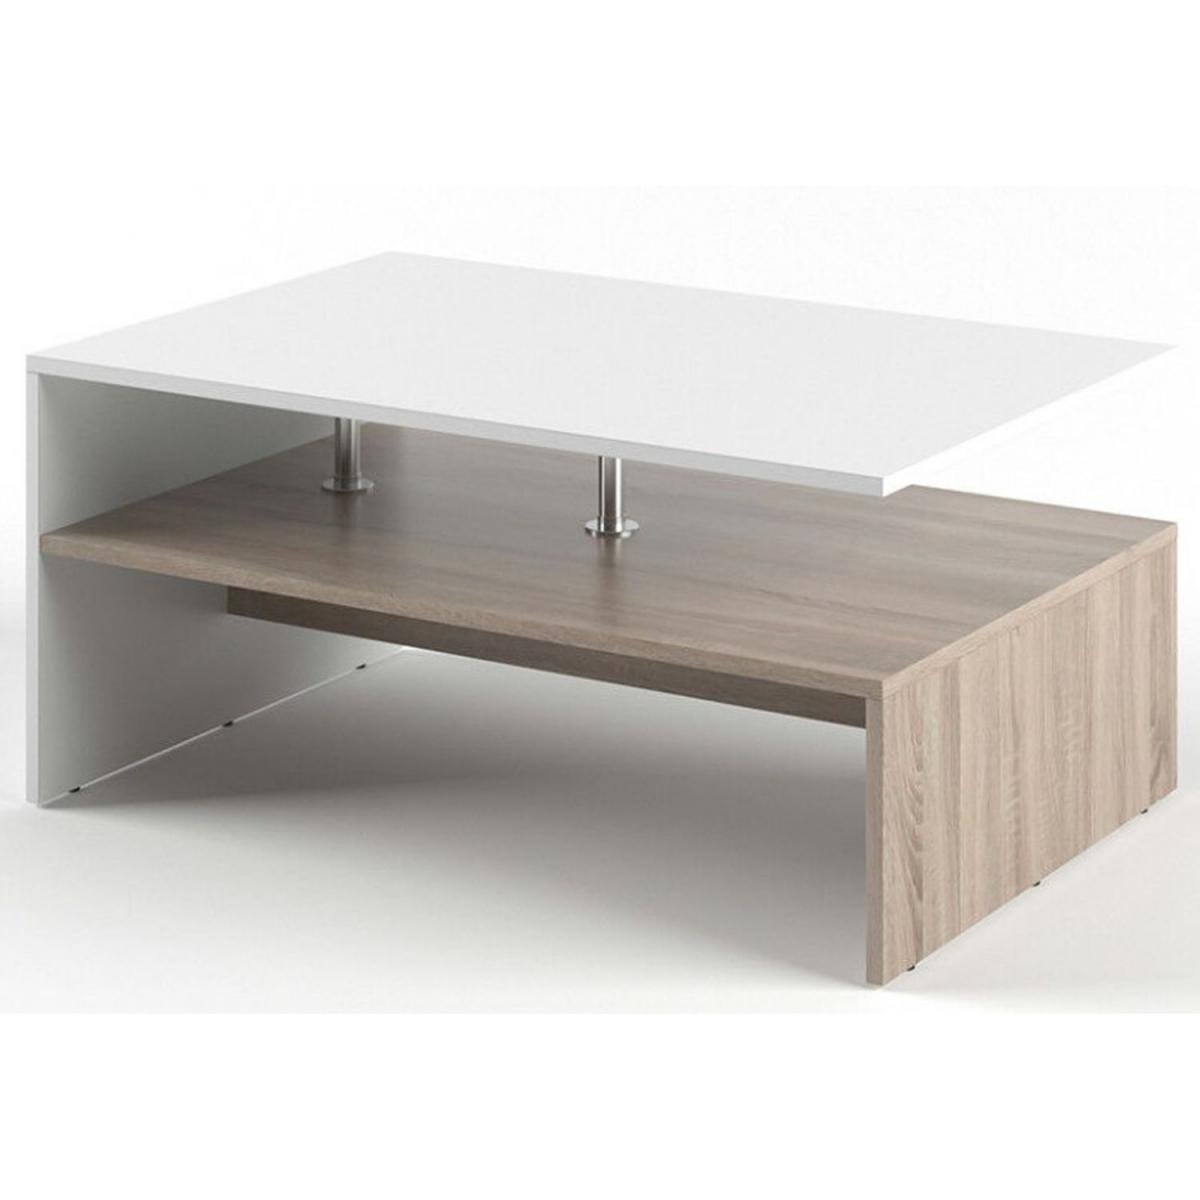 Toilinux Table basse rectangulaire design scandinave Isidor - L. 90 x H. 42 cm - Couleur bois et blanc